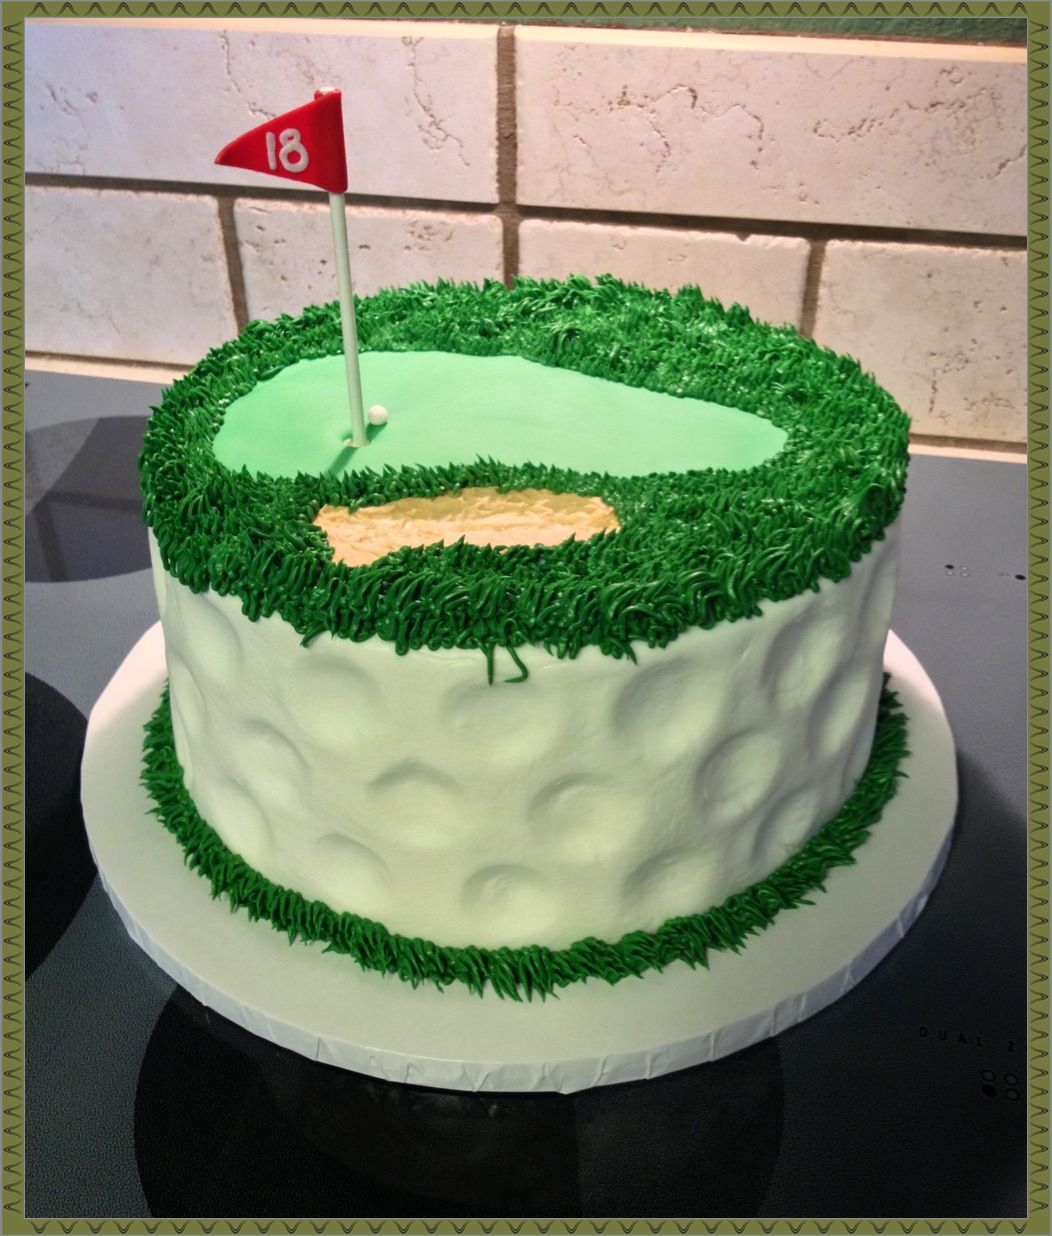 Golf Themed Cake Images : A golf themed layer cake :) themed idea cakes Xmas ...